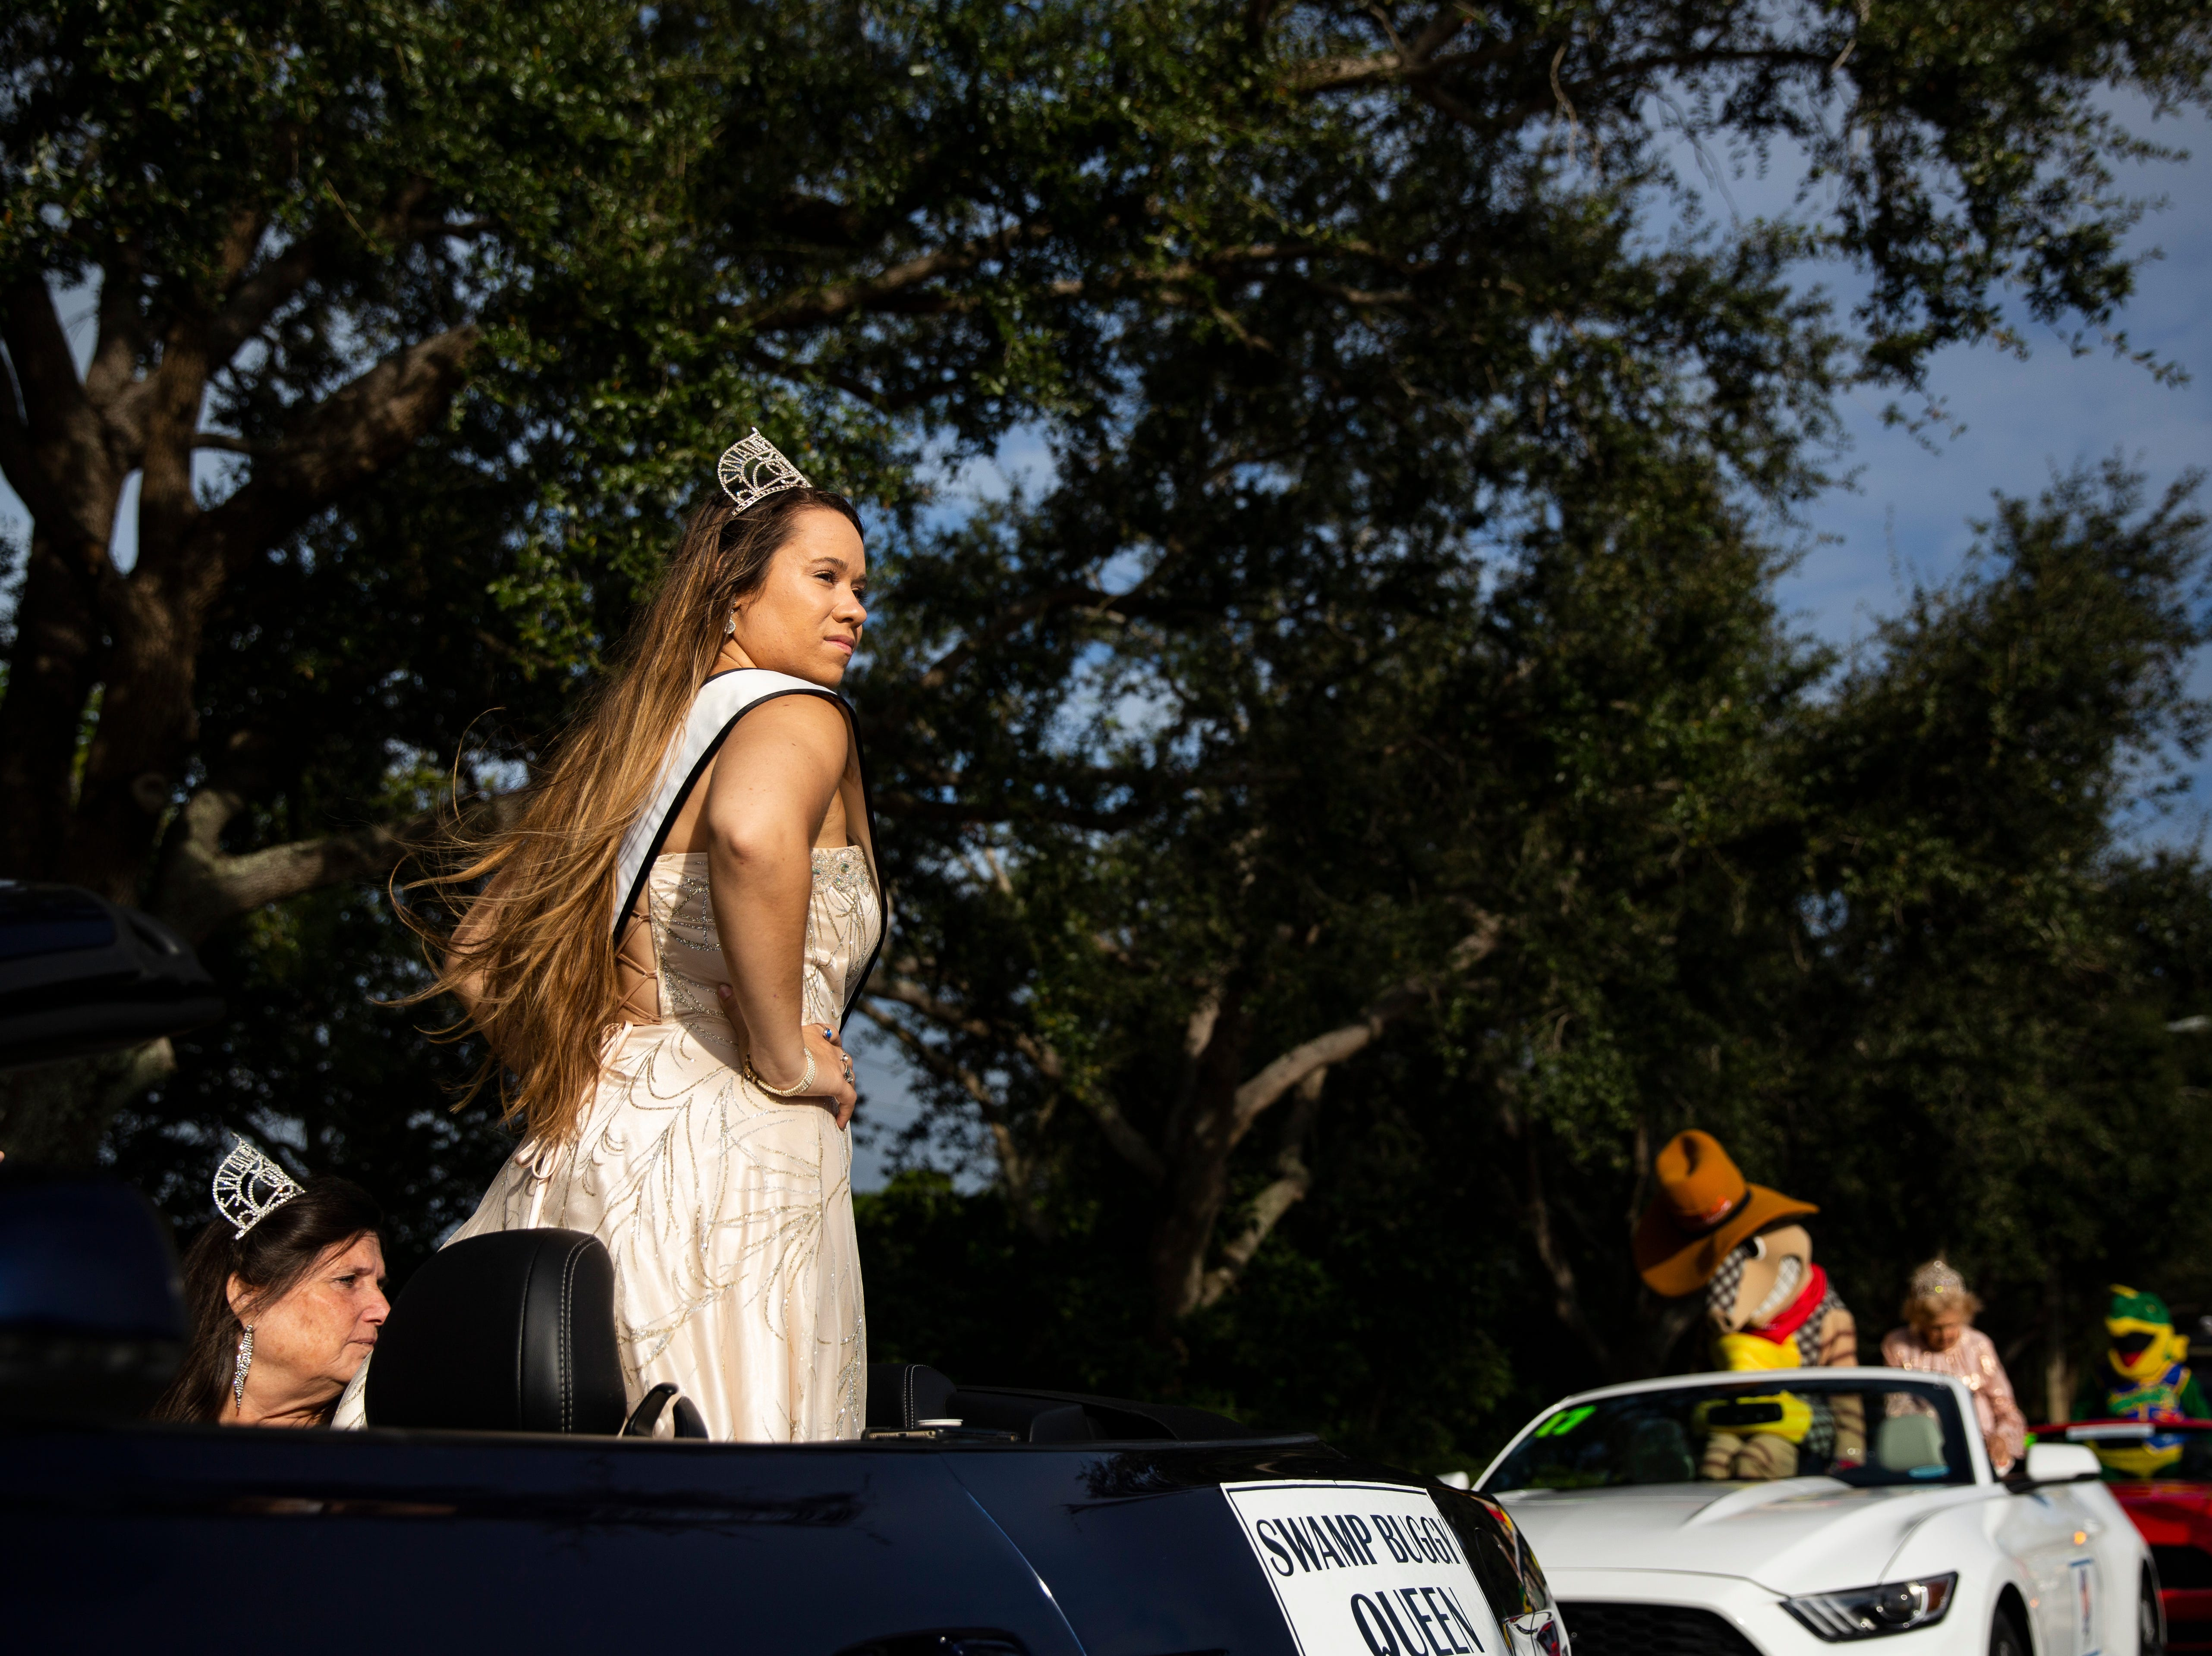 Erica Flesher, 23, wears a glittery pageant-style dress during the 70th annual Swamp Buggy Parade Saturday morning, Nov. 3, 2018. She's served as Swamp Buggy queen the past four years. Saturday's parade featured past Swamp Buggy Queens, Naples High School marching band, racing buggies and Swampy - the race mascot, among other things.